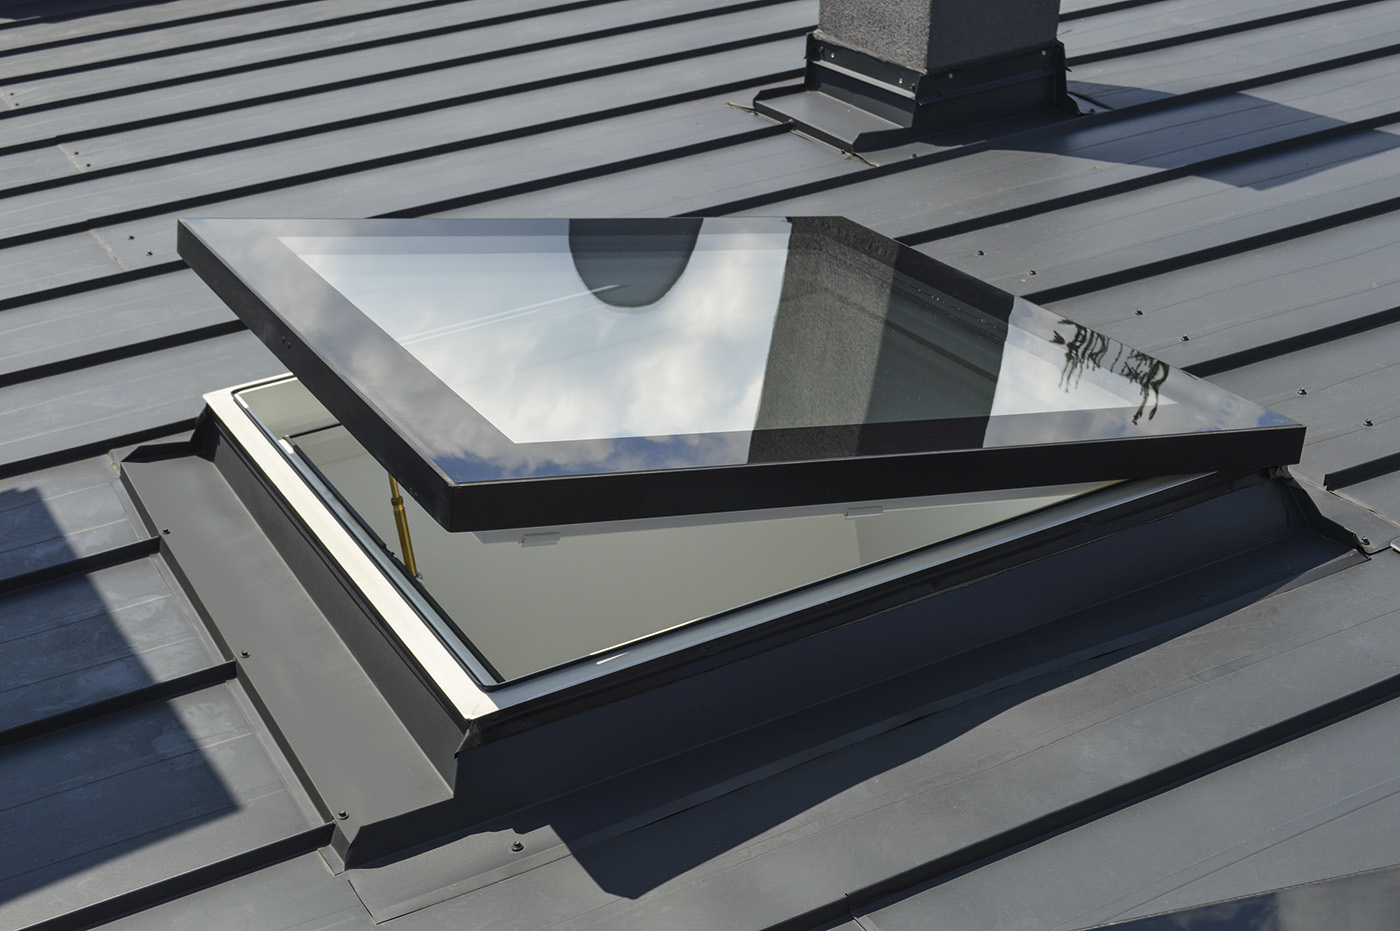 Electrically operated flat roof windows in roof